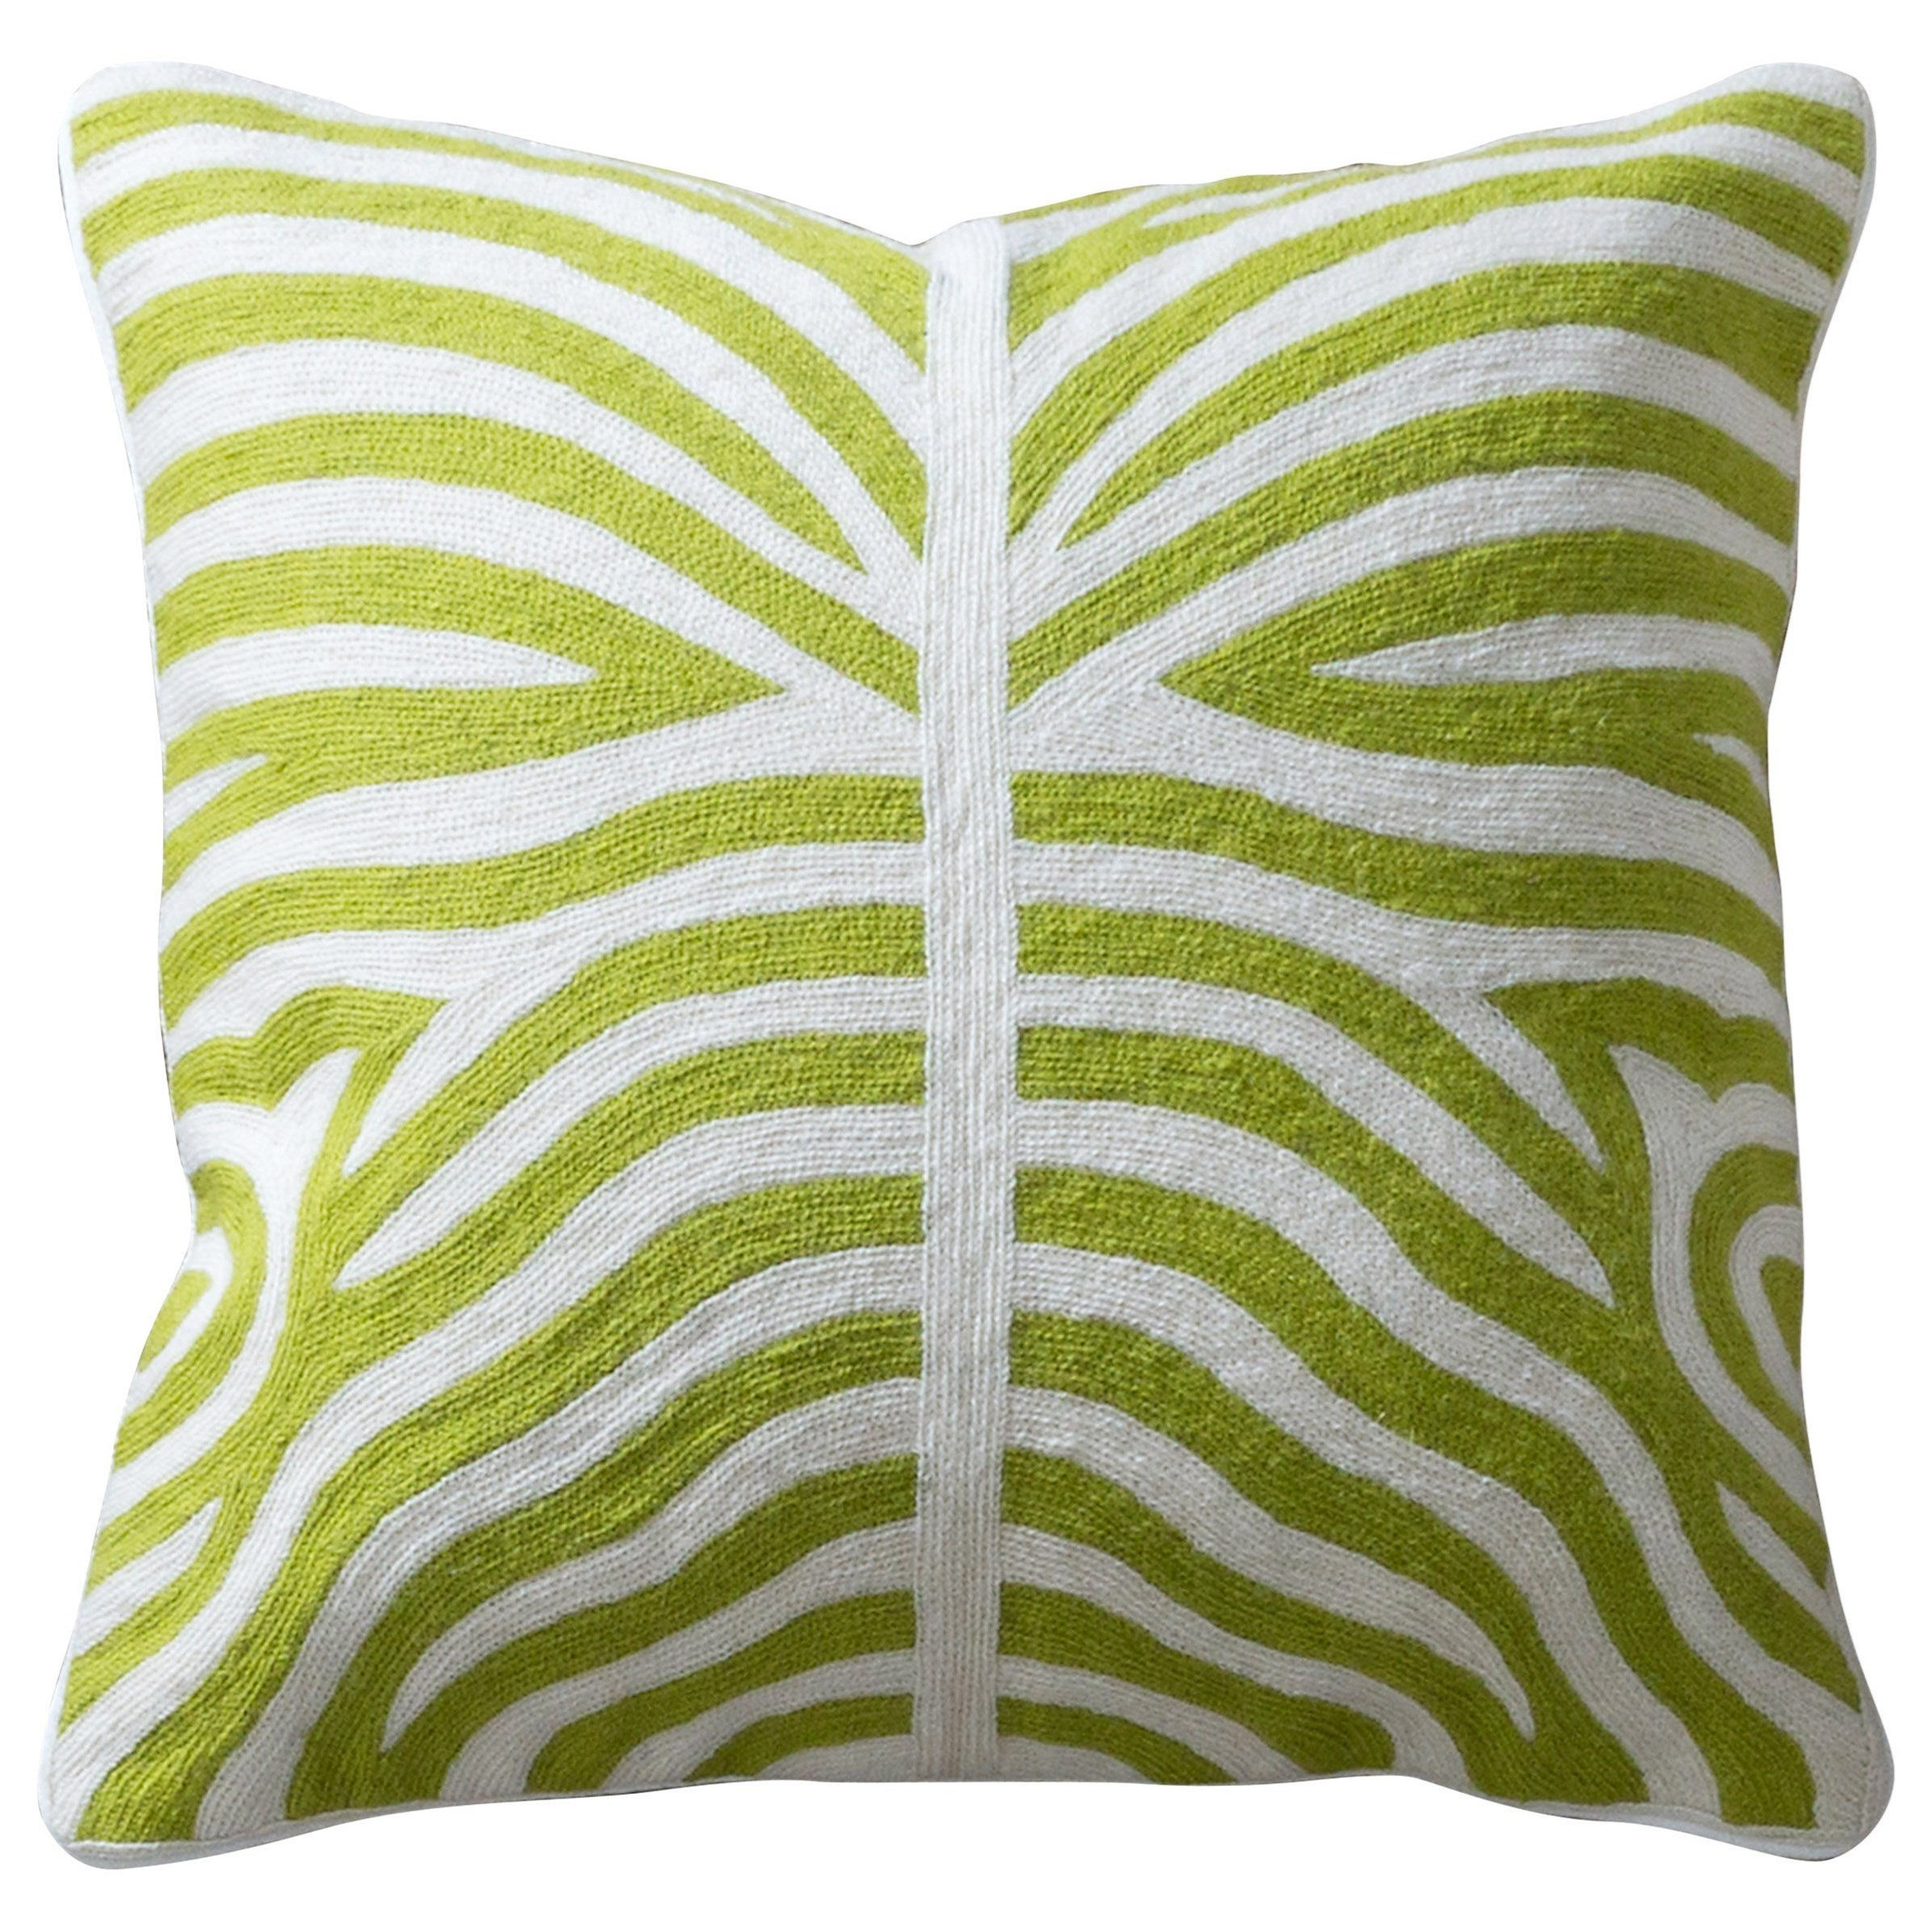 Accessories Green and White Accent Pillow by StyleCraft at Alison Craig Home Furnishings